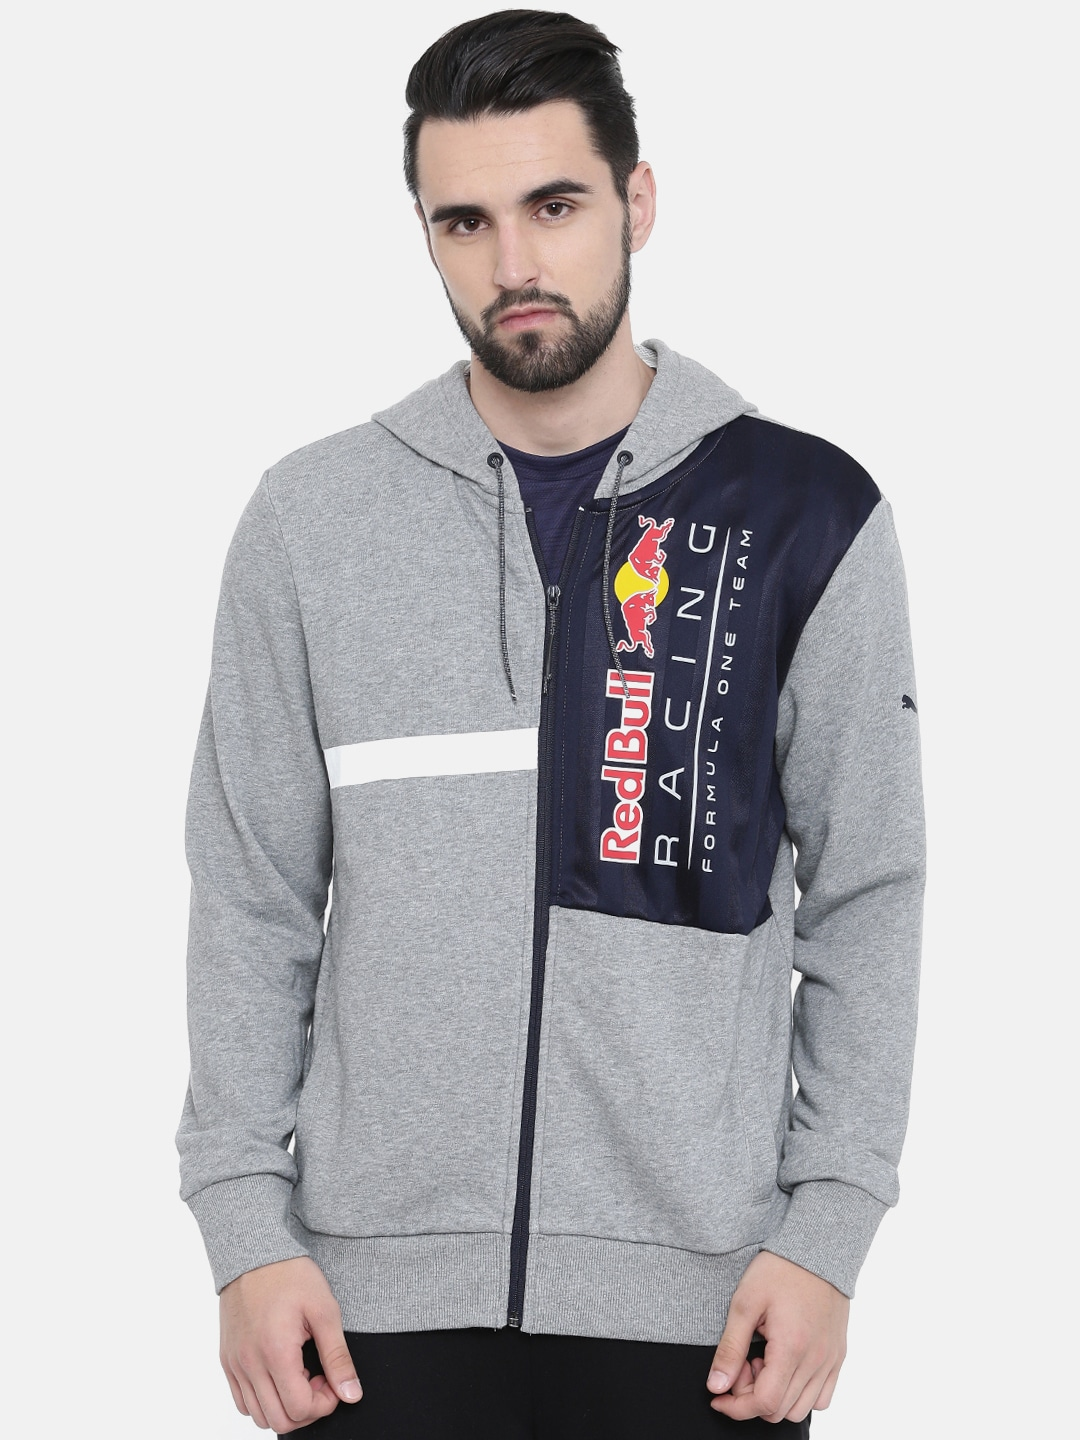 5506ce759649 Sweatshirts   Hoodies - Buy Sweatshirts   Hoodies for Men   Women Online -  Myntra